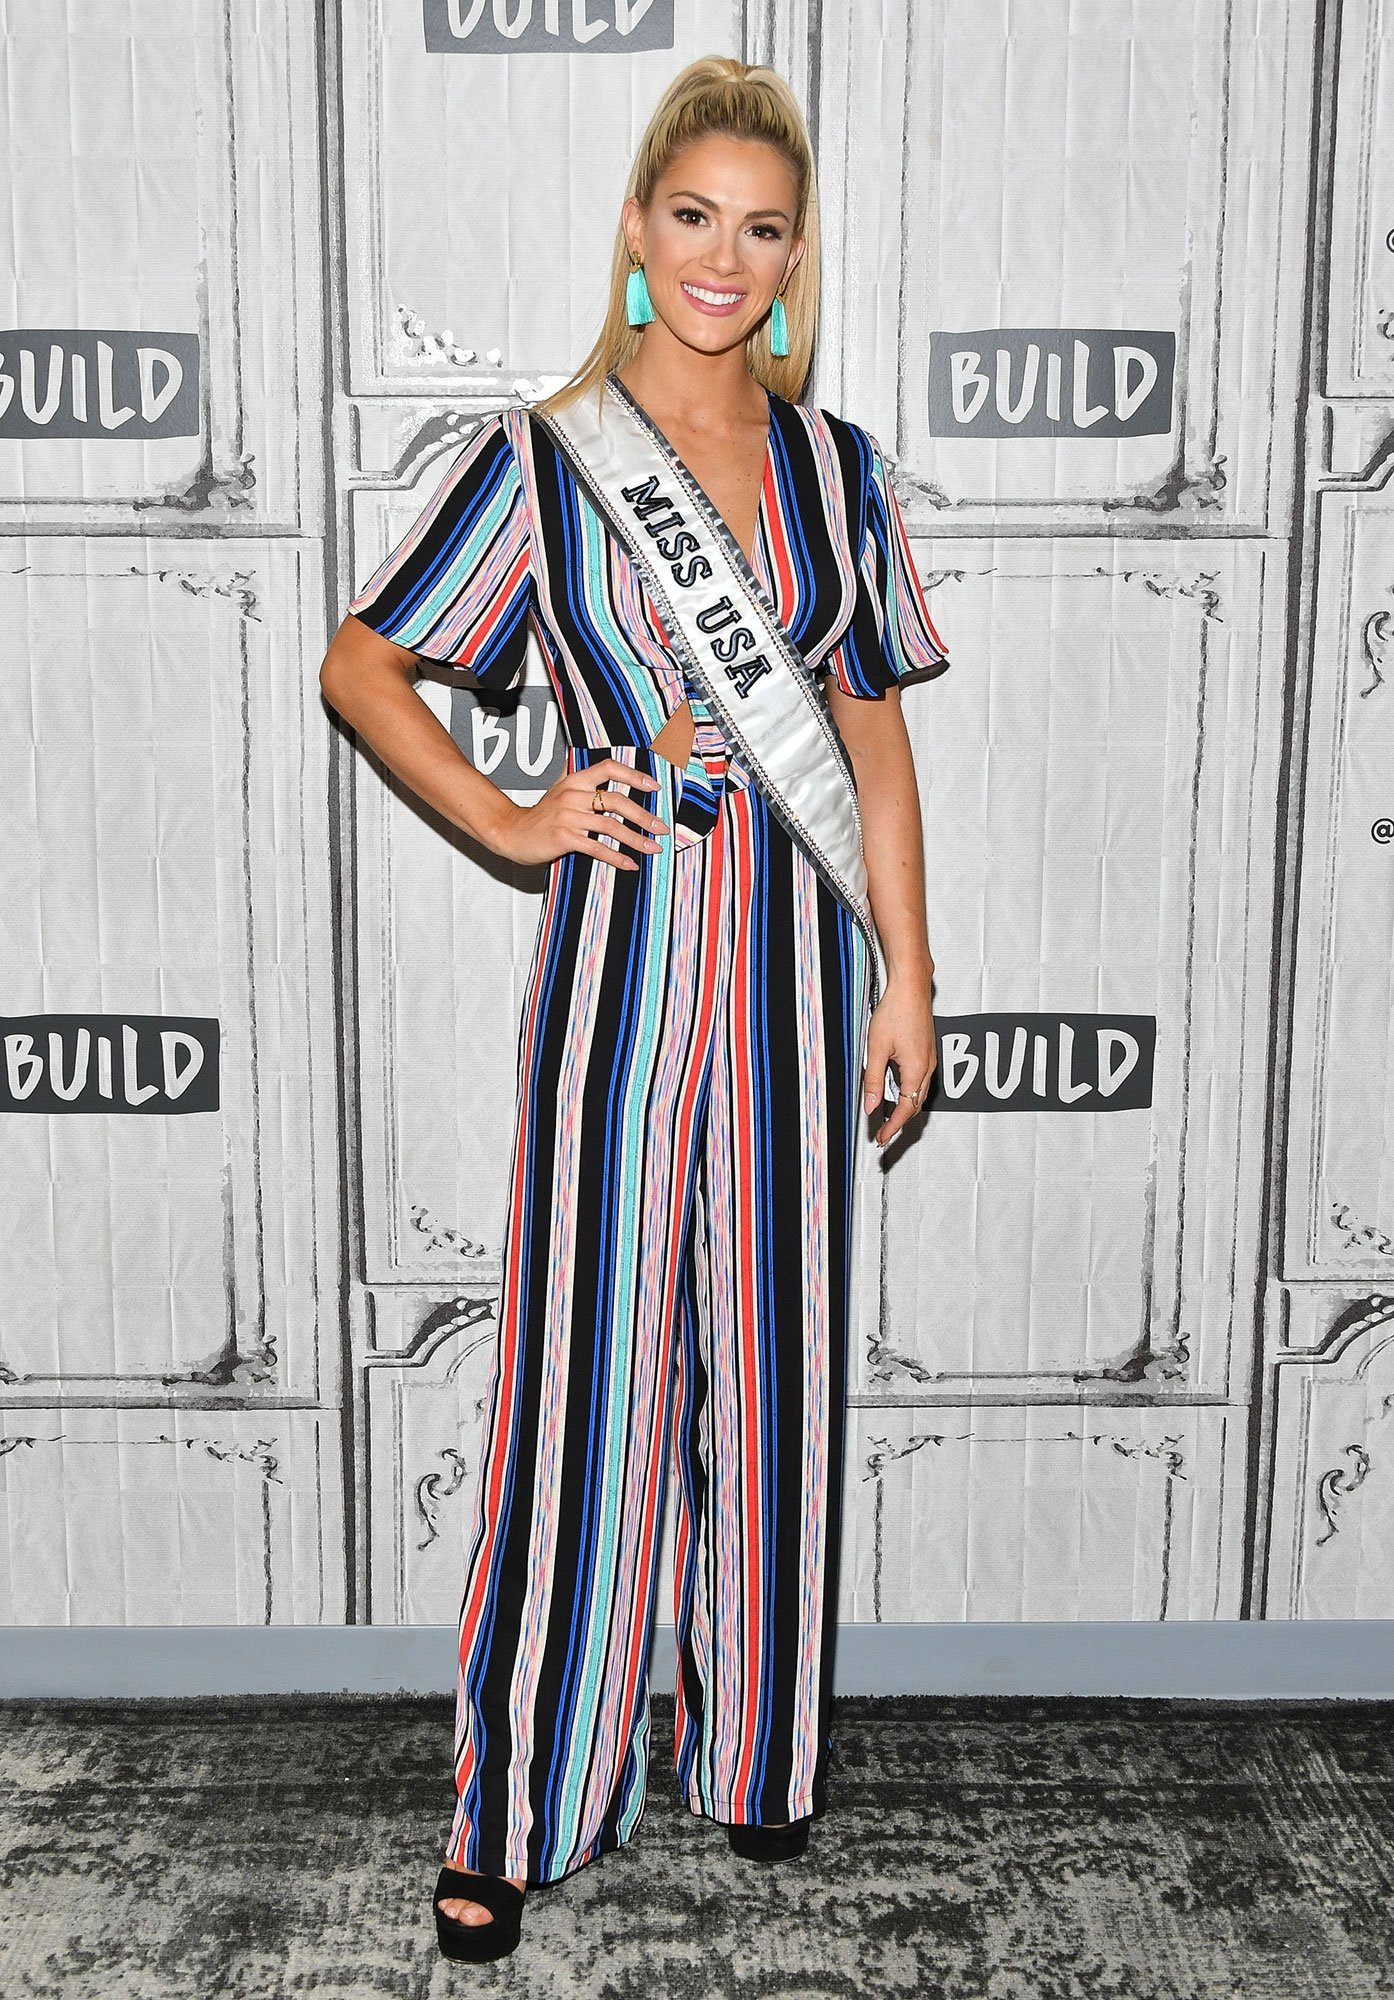 Miss USA Apologizes After Sparking Backlash Over Comments About Asian Miss Universe Contestants